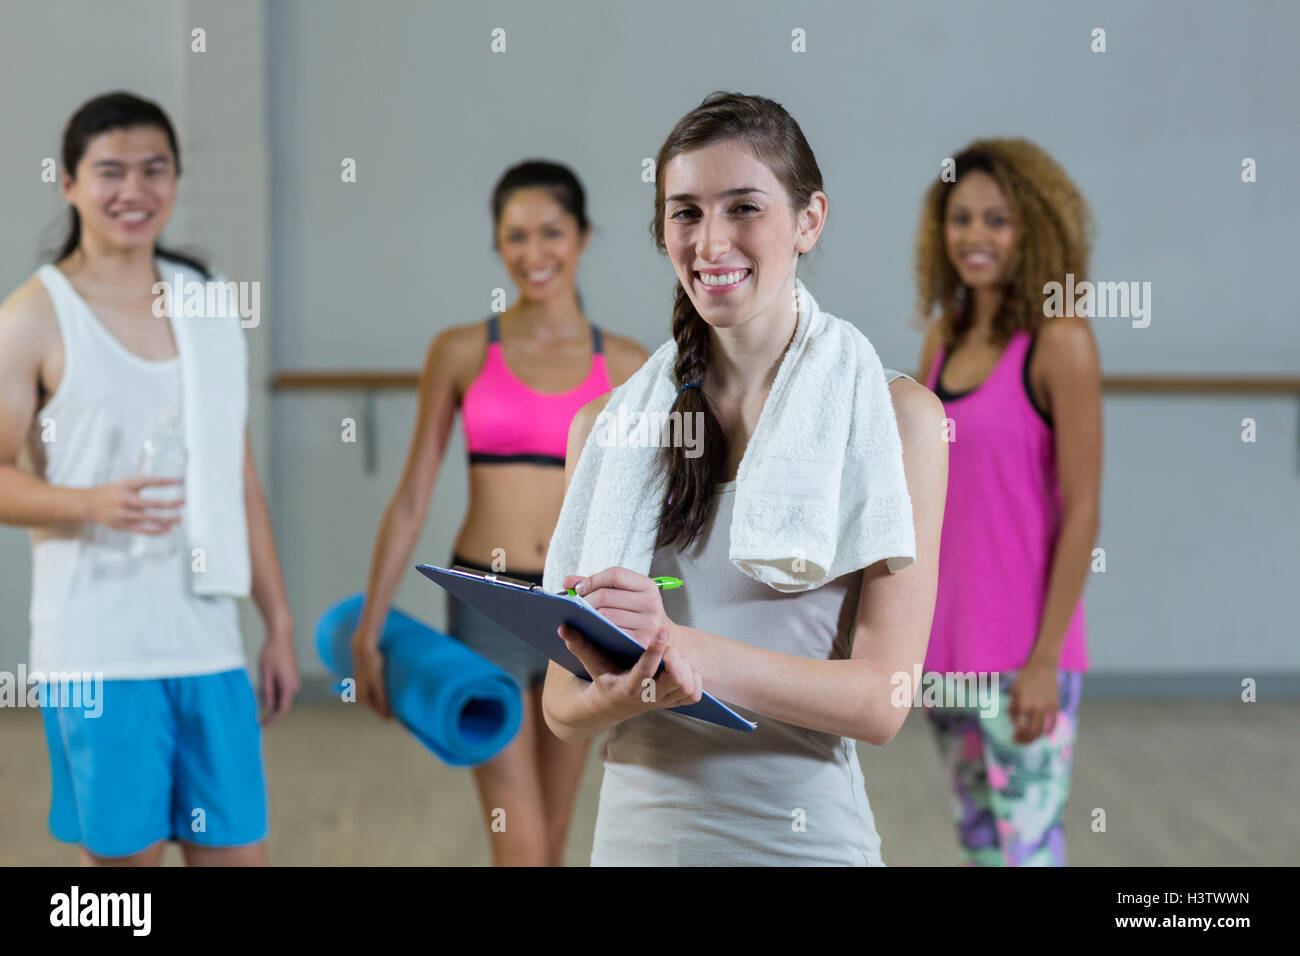 Portrait of female trainer holding clipboard with fitness class in background Stock Photo